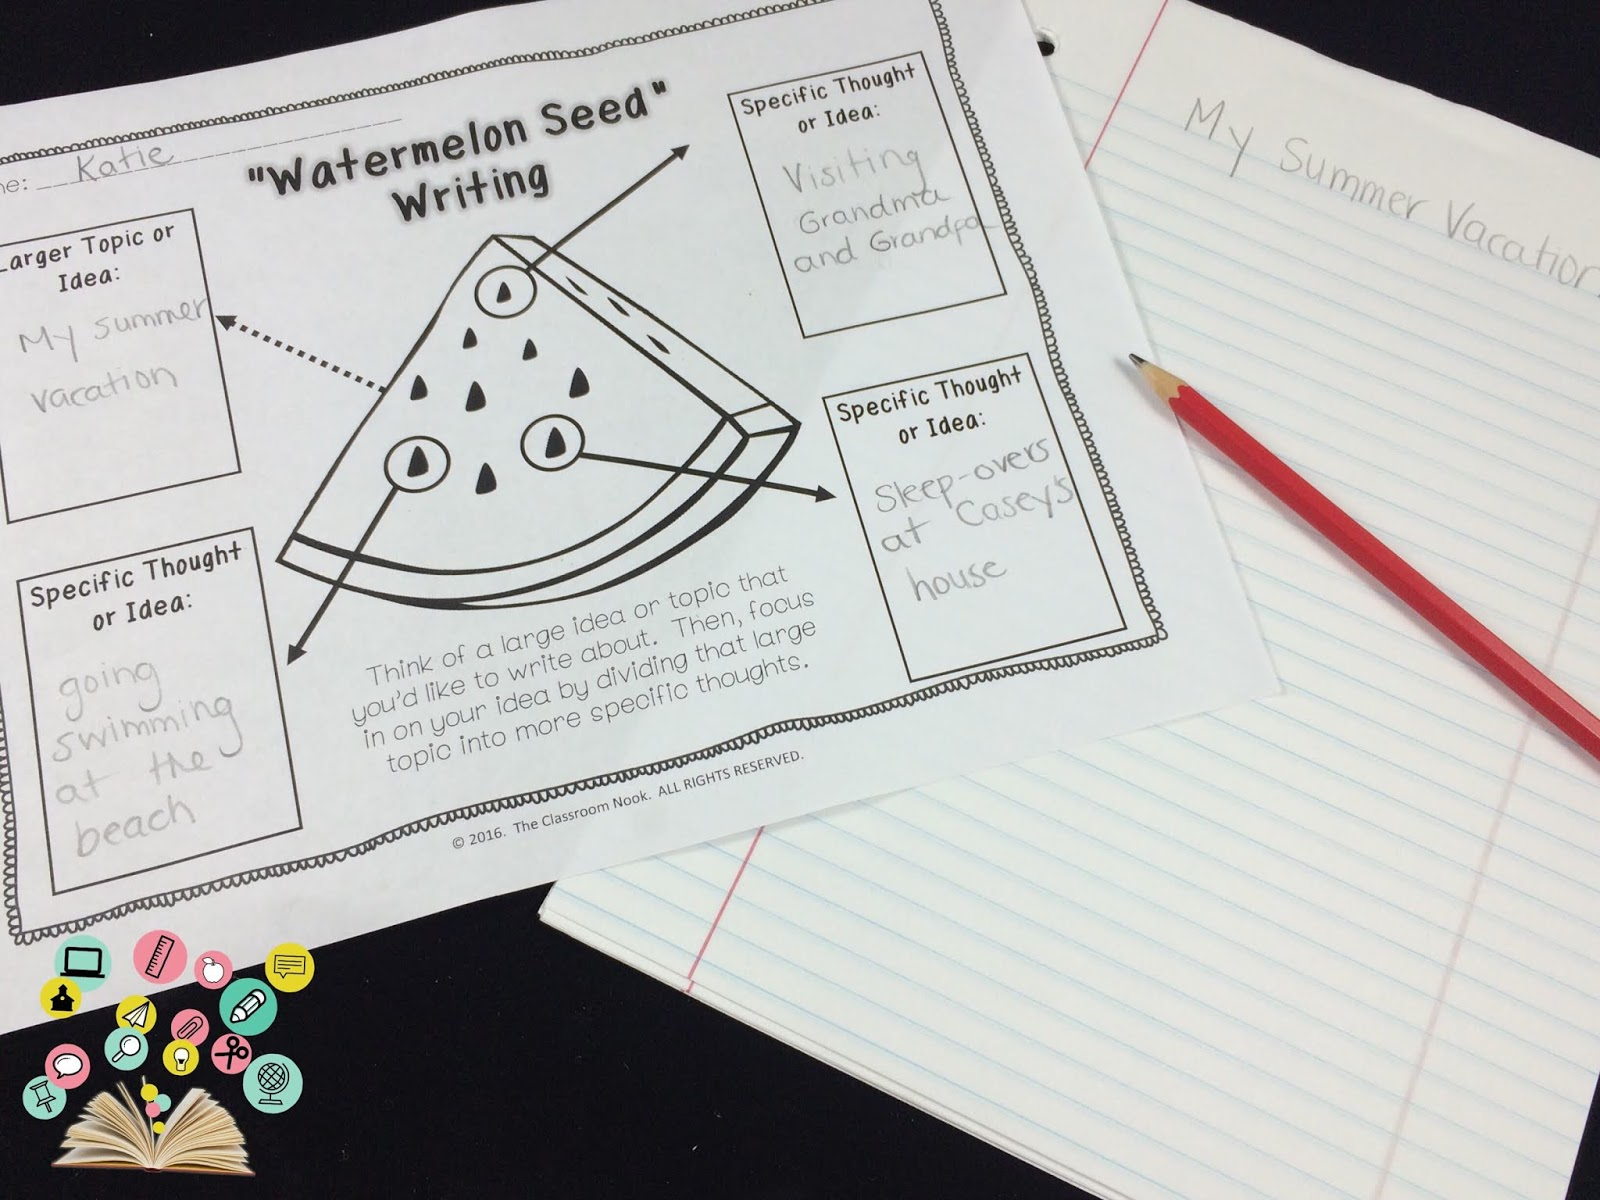 Use the analogy of a watermelon to help students expand a broad idea into an entire story